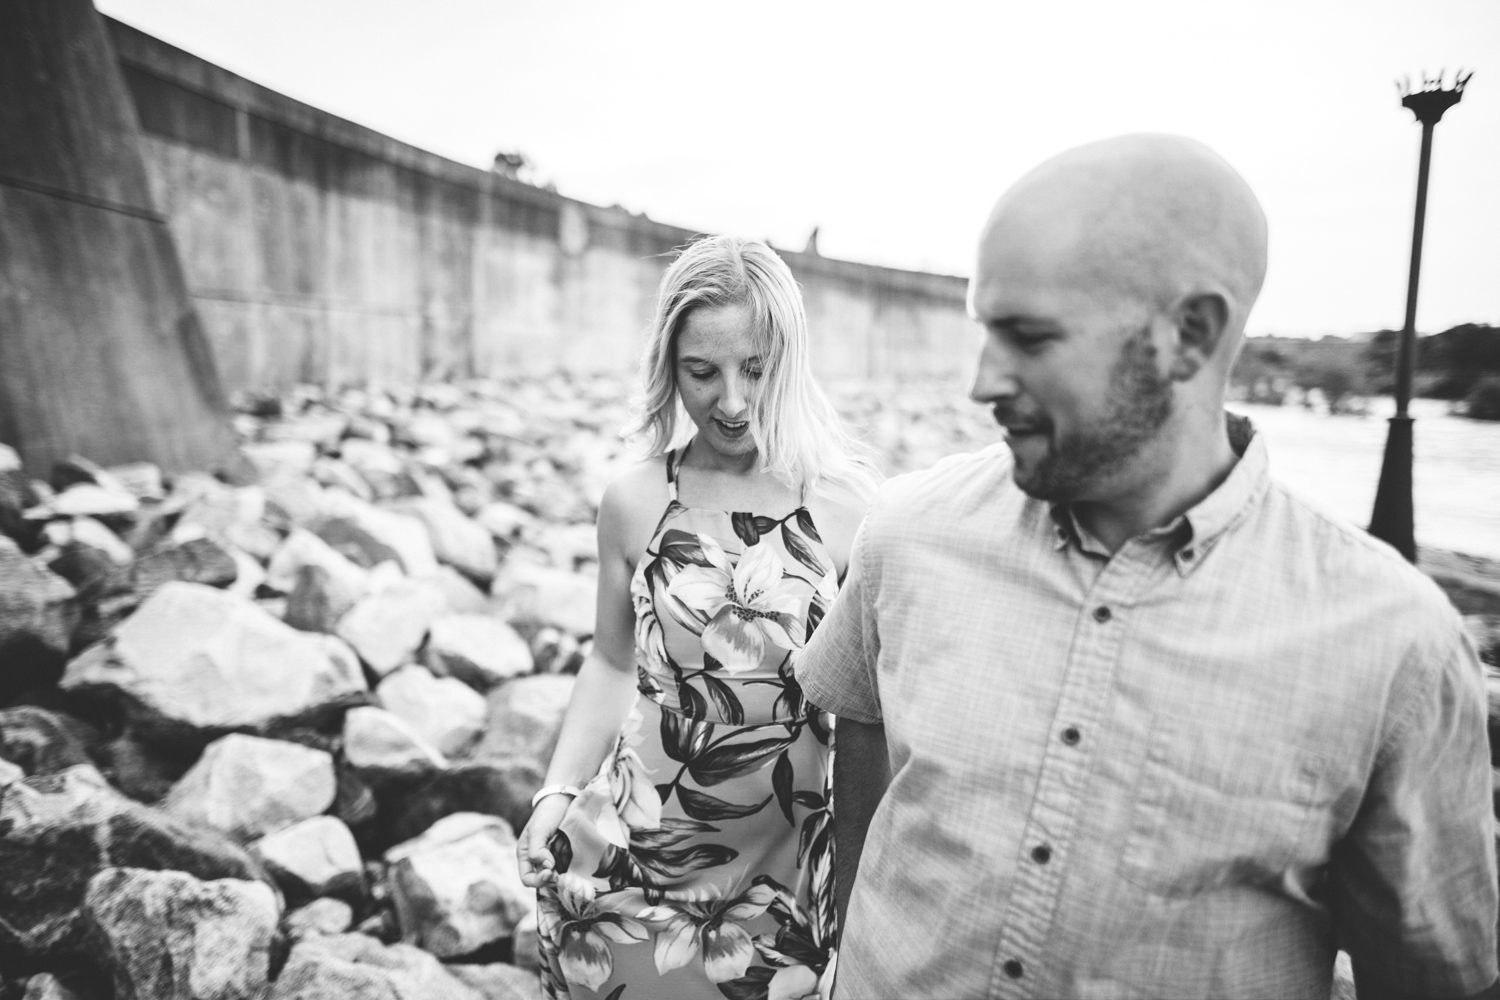 008 - man holds woman's hand and walks along the rocks near the james river during an engagement session.jpg